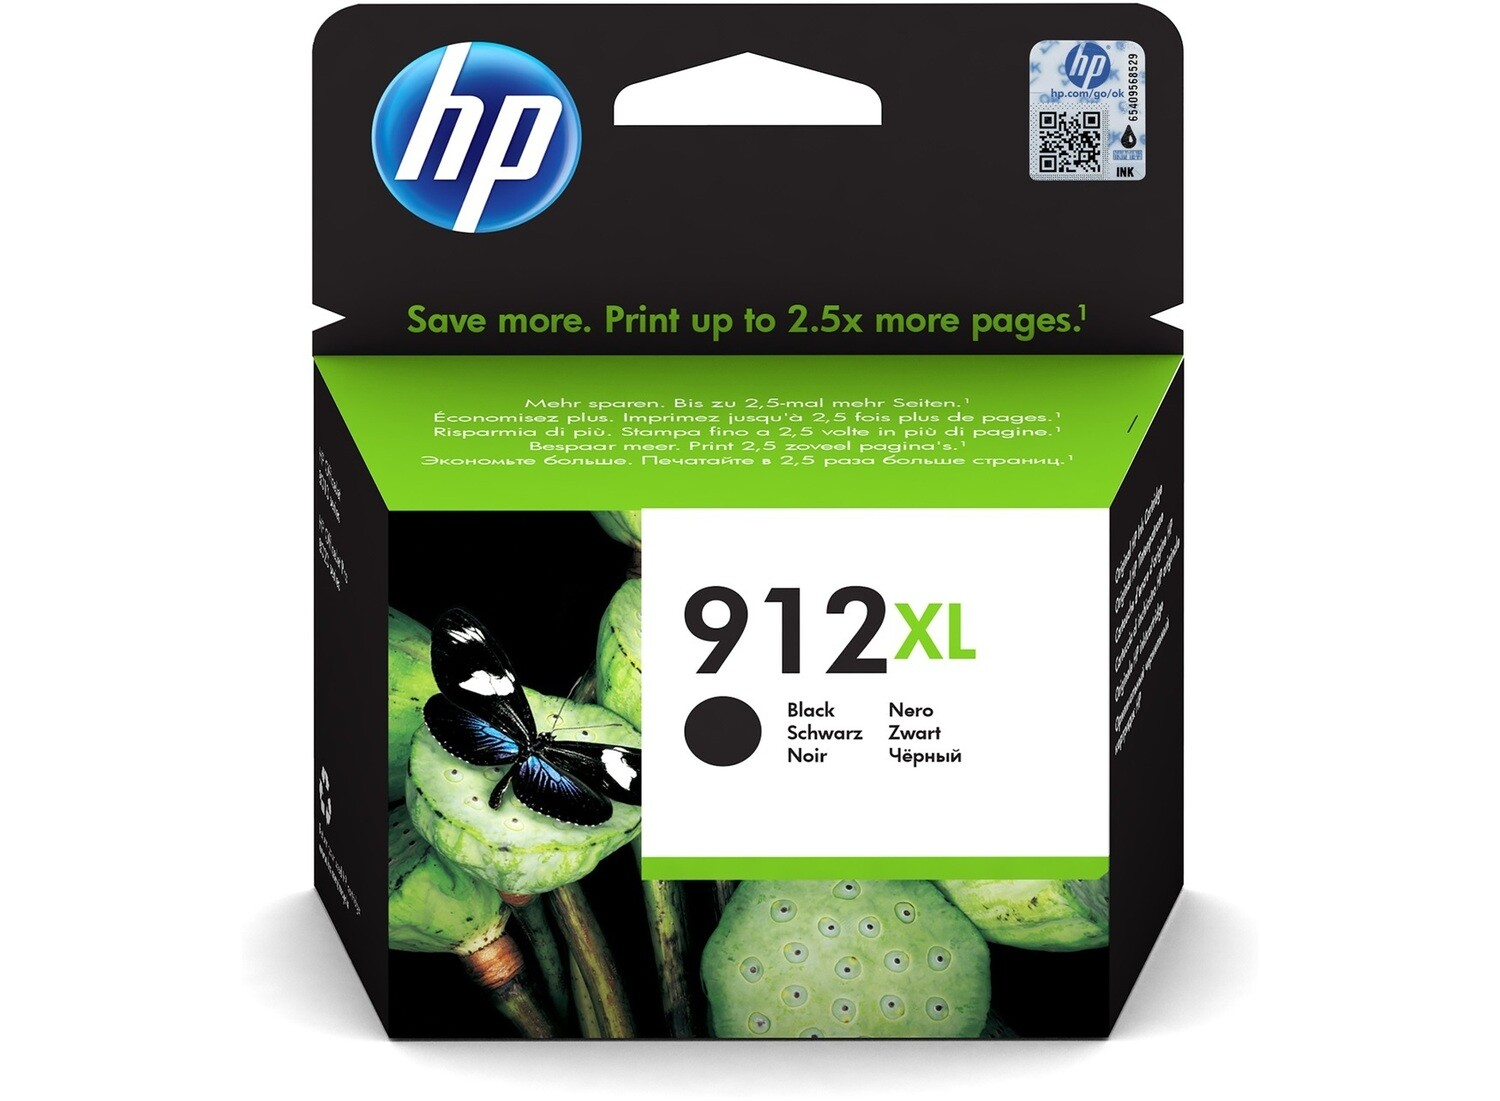 Original HP 912 ink cartridges